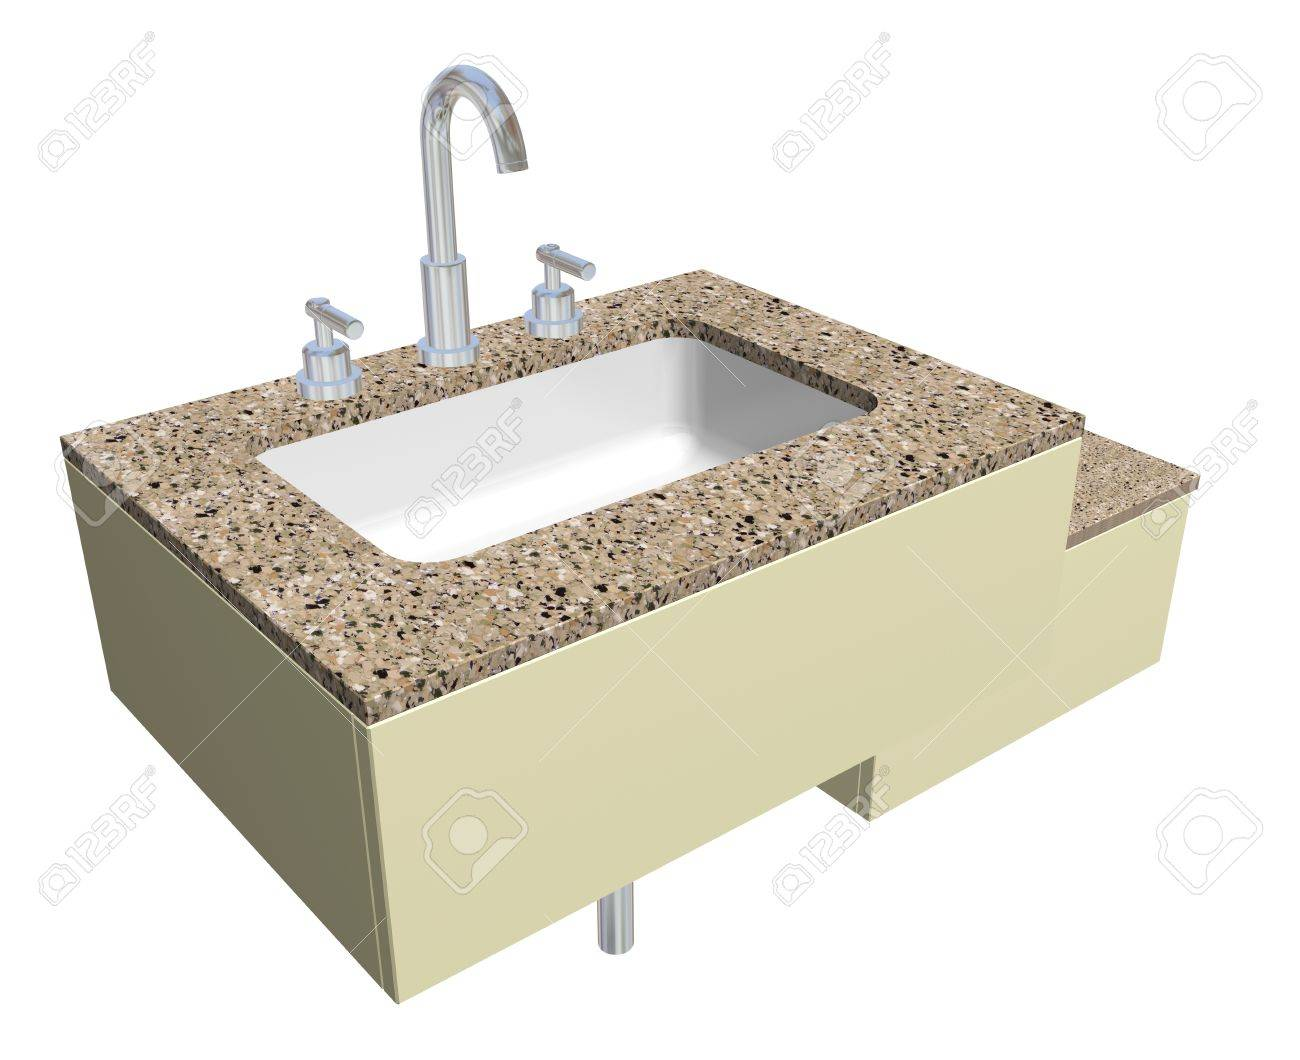 Bathroom Faucets For Granite Countertops white built-in square bathroom sink with chrome faucet and